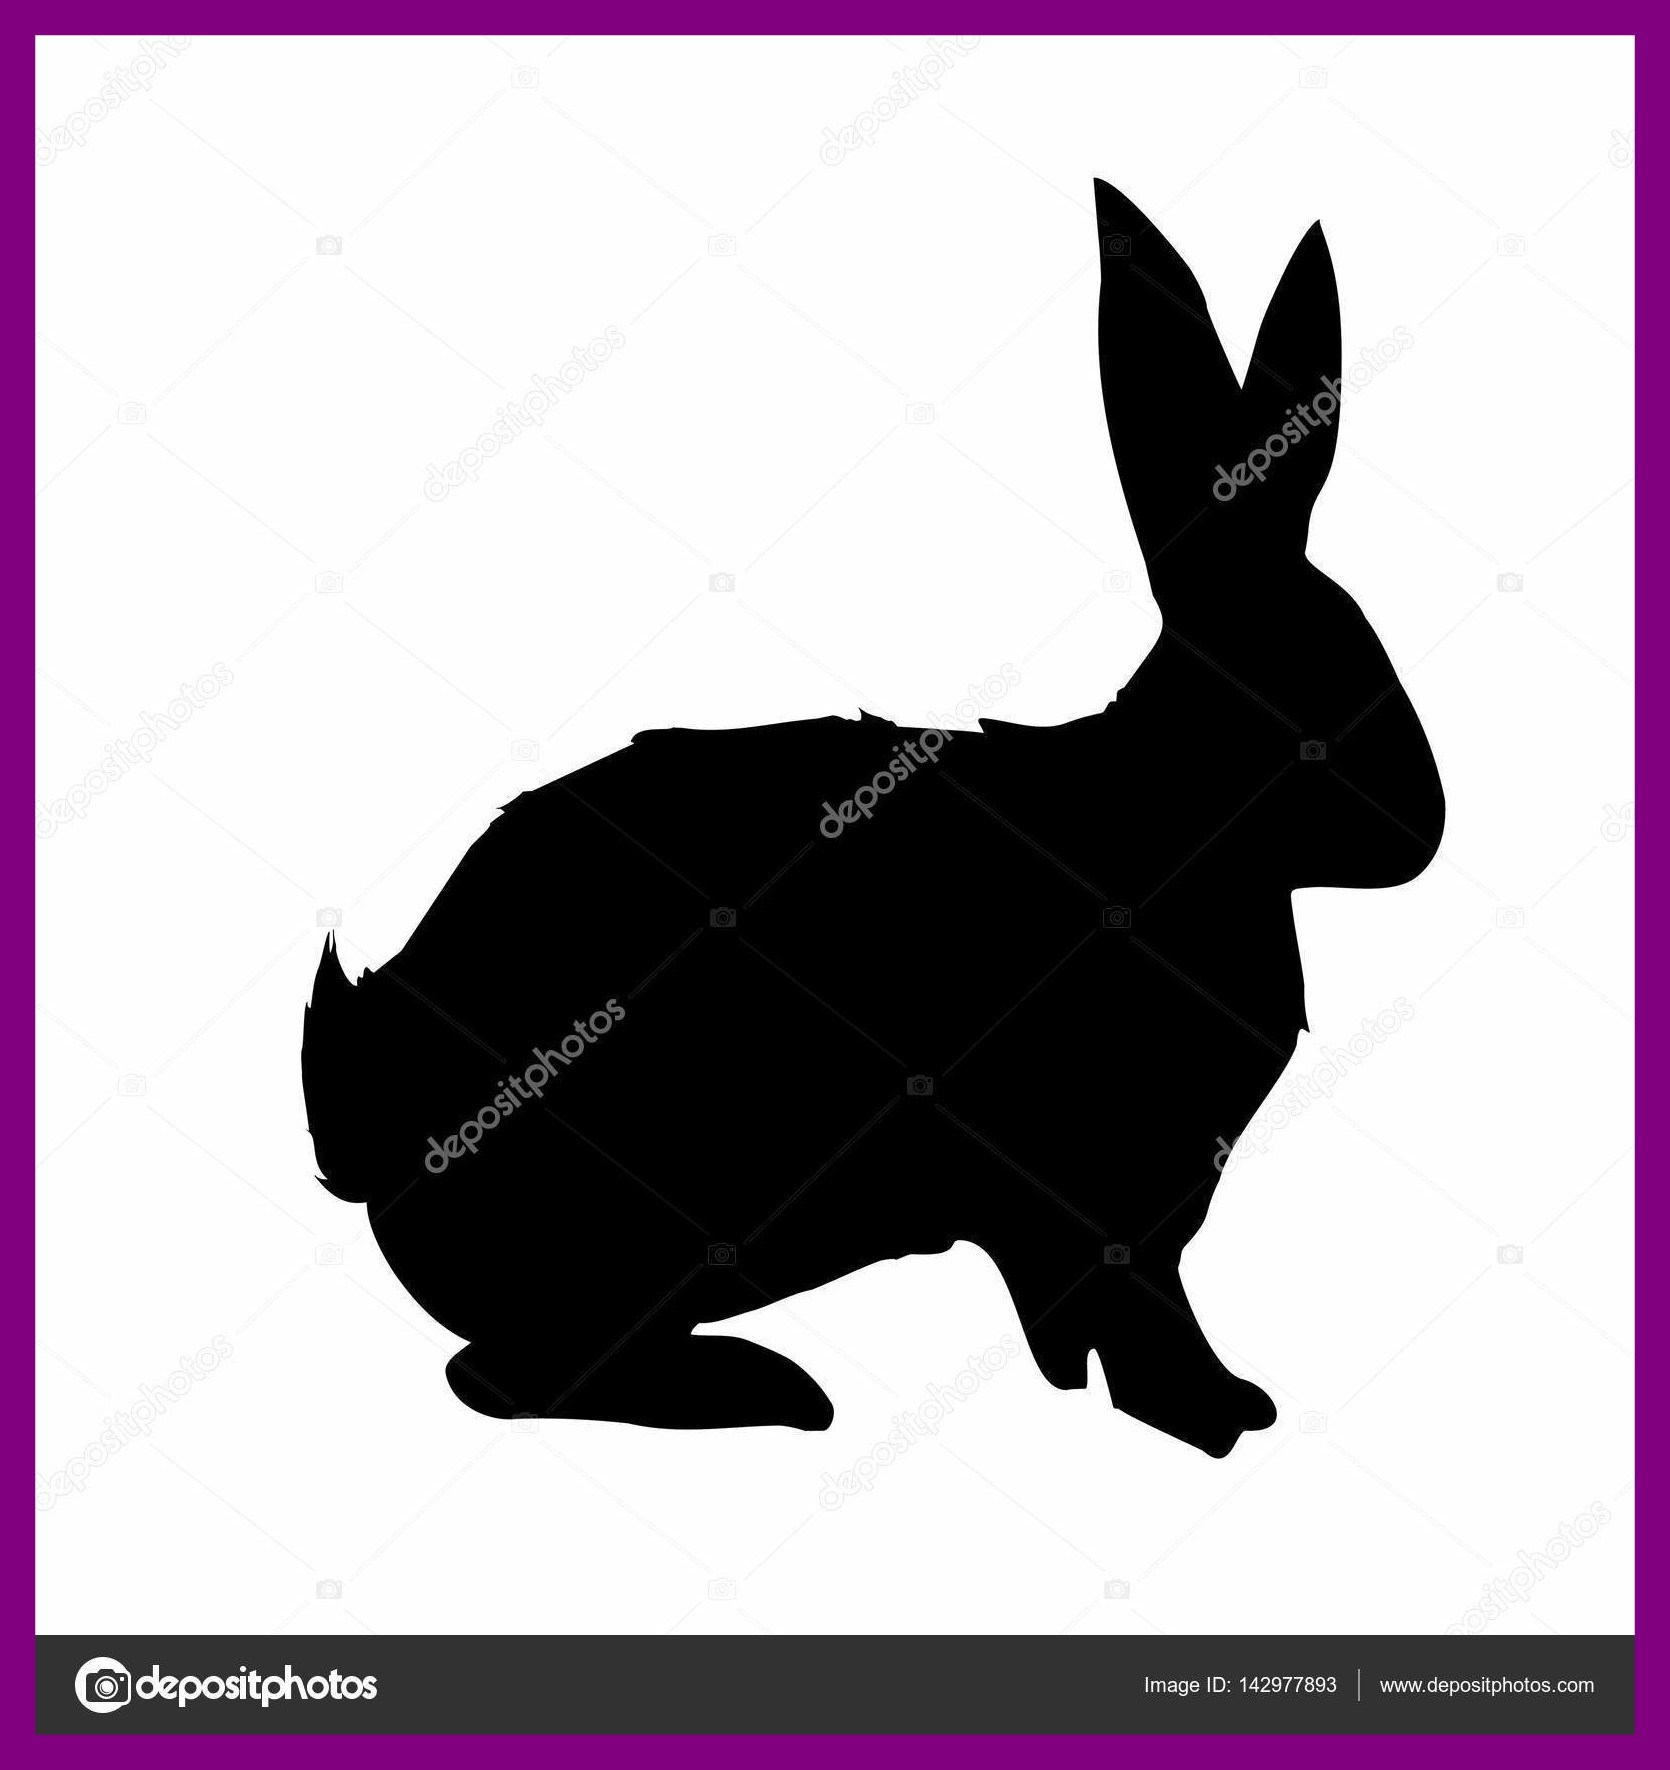 1670x1770 Appealing Bugs Bunny Rabbit Silhouette Shirt Image For Ideas